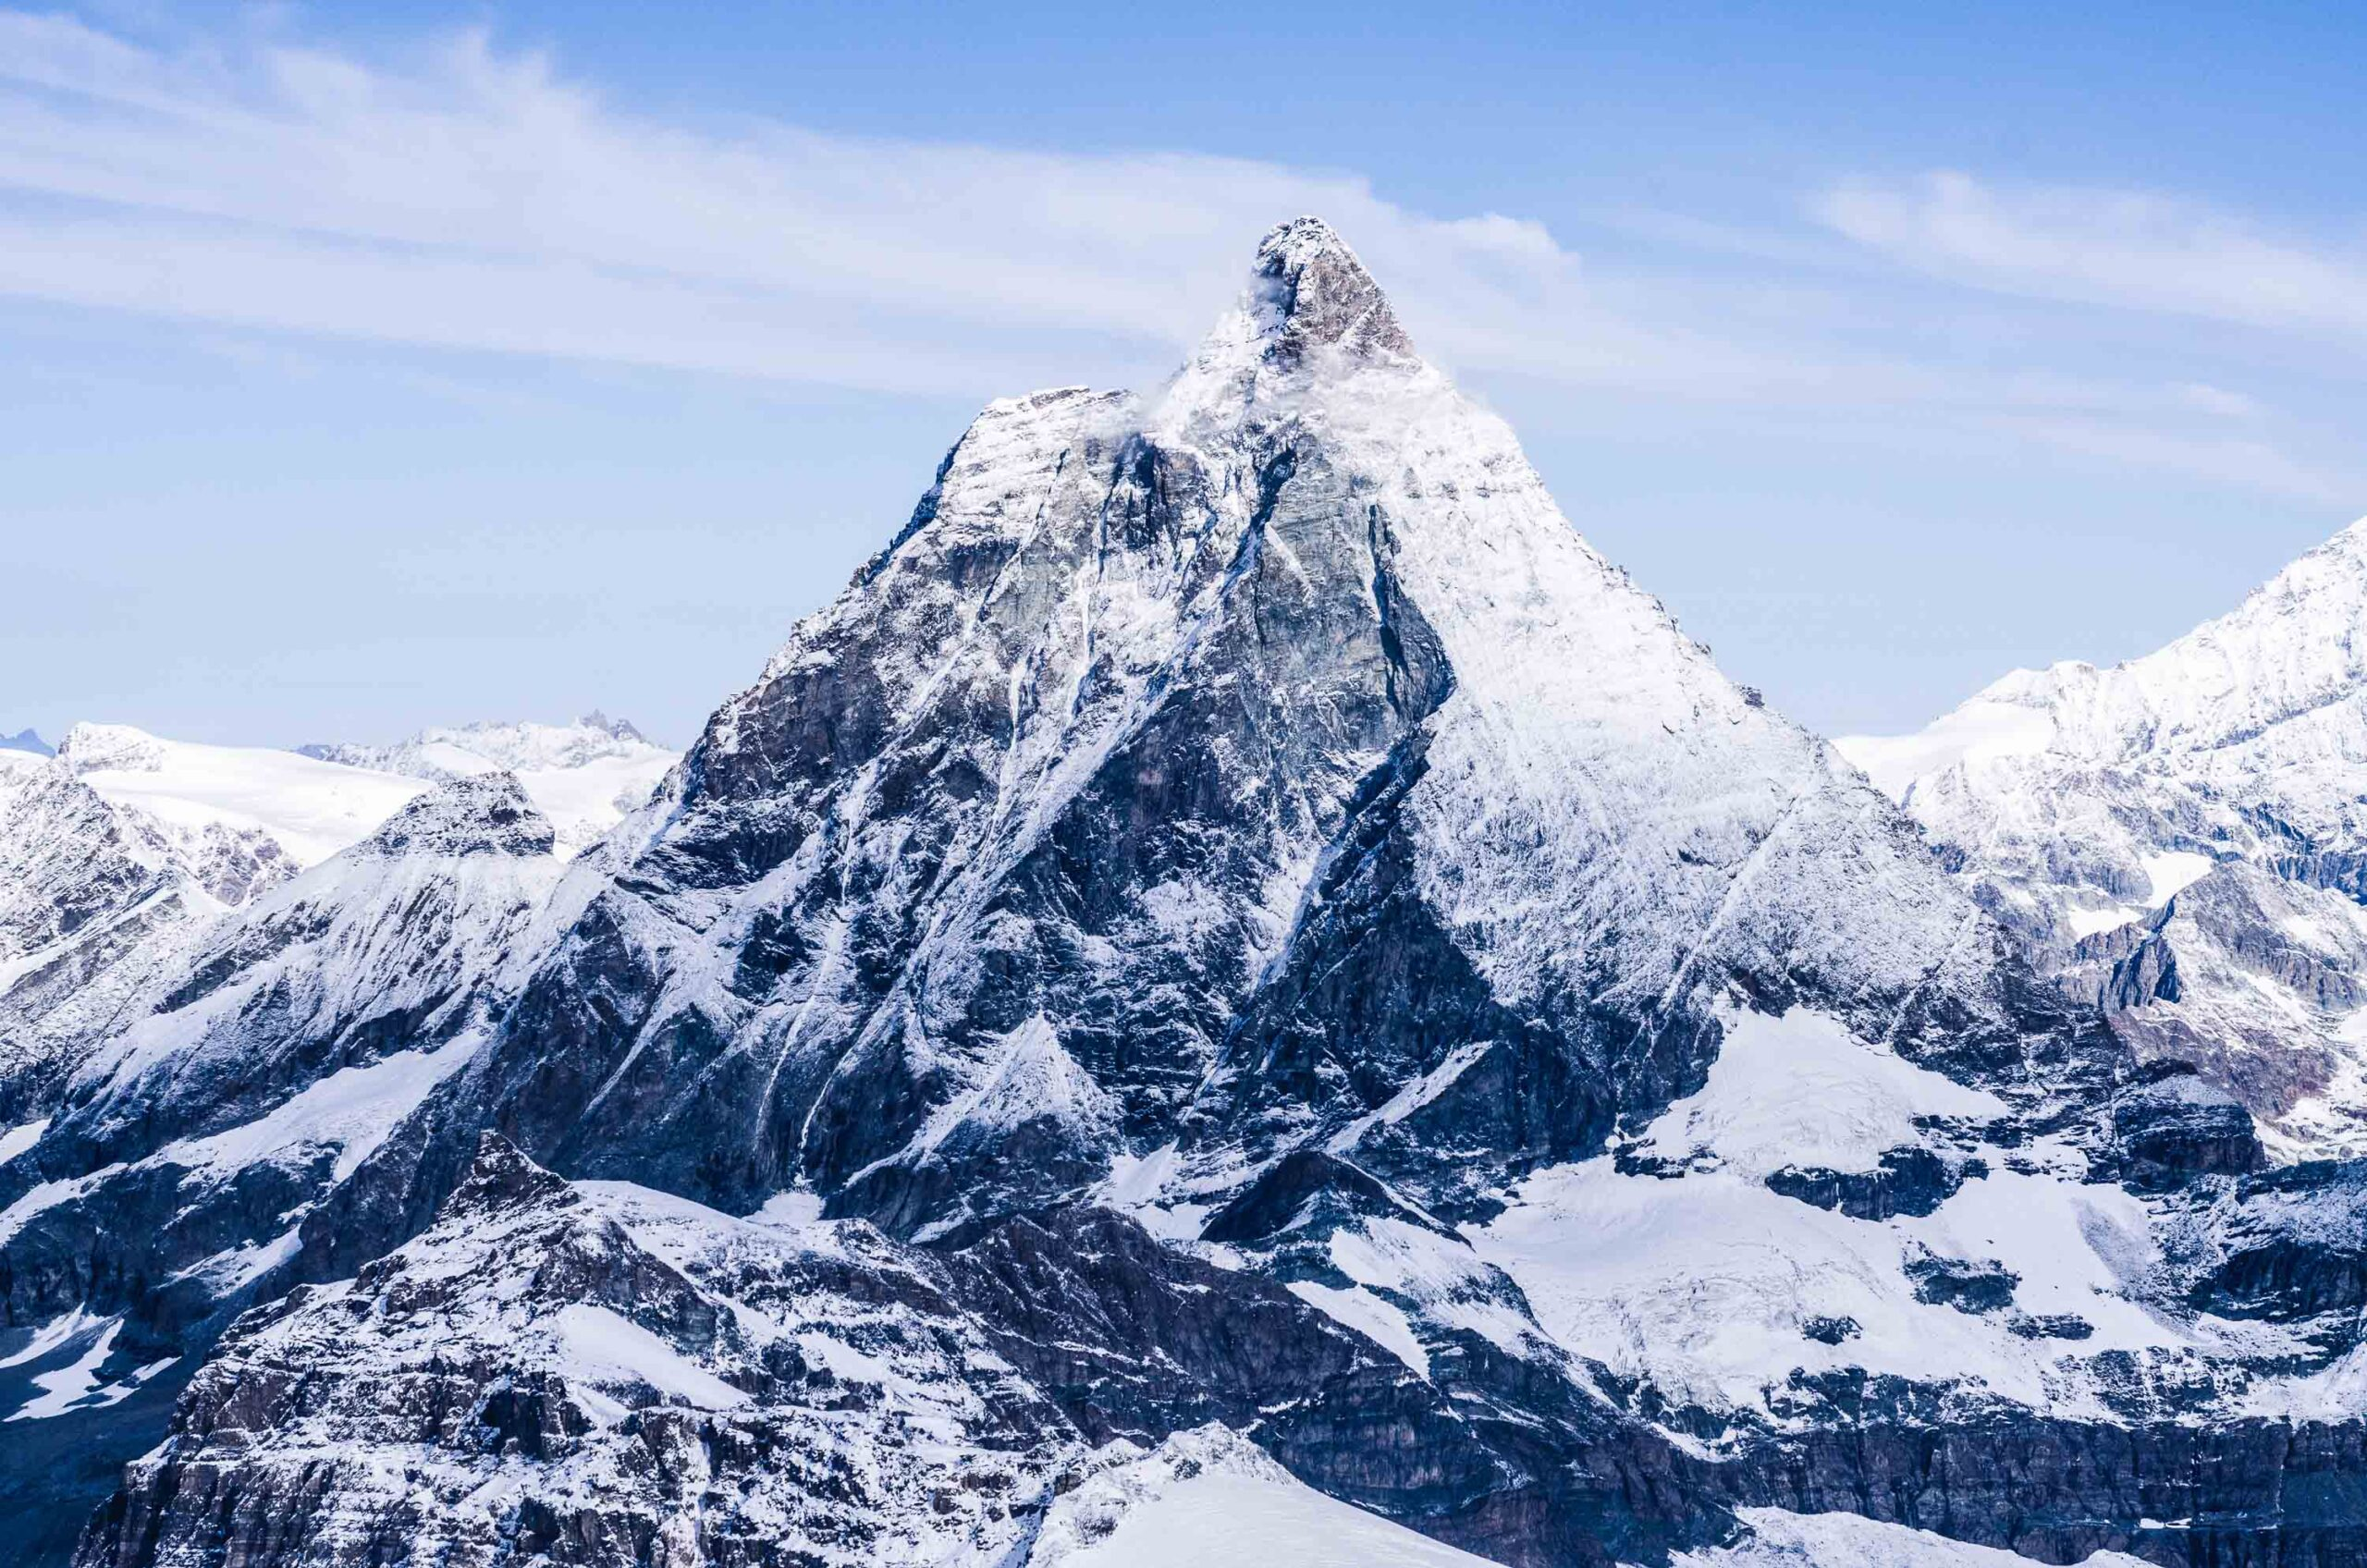 Matterhorn peak in Swiss Alps, snow